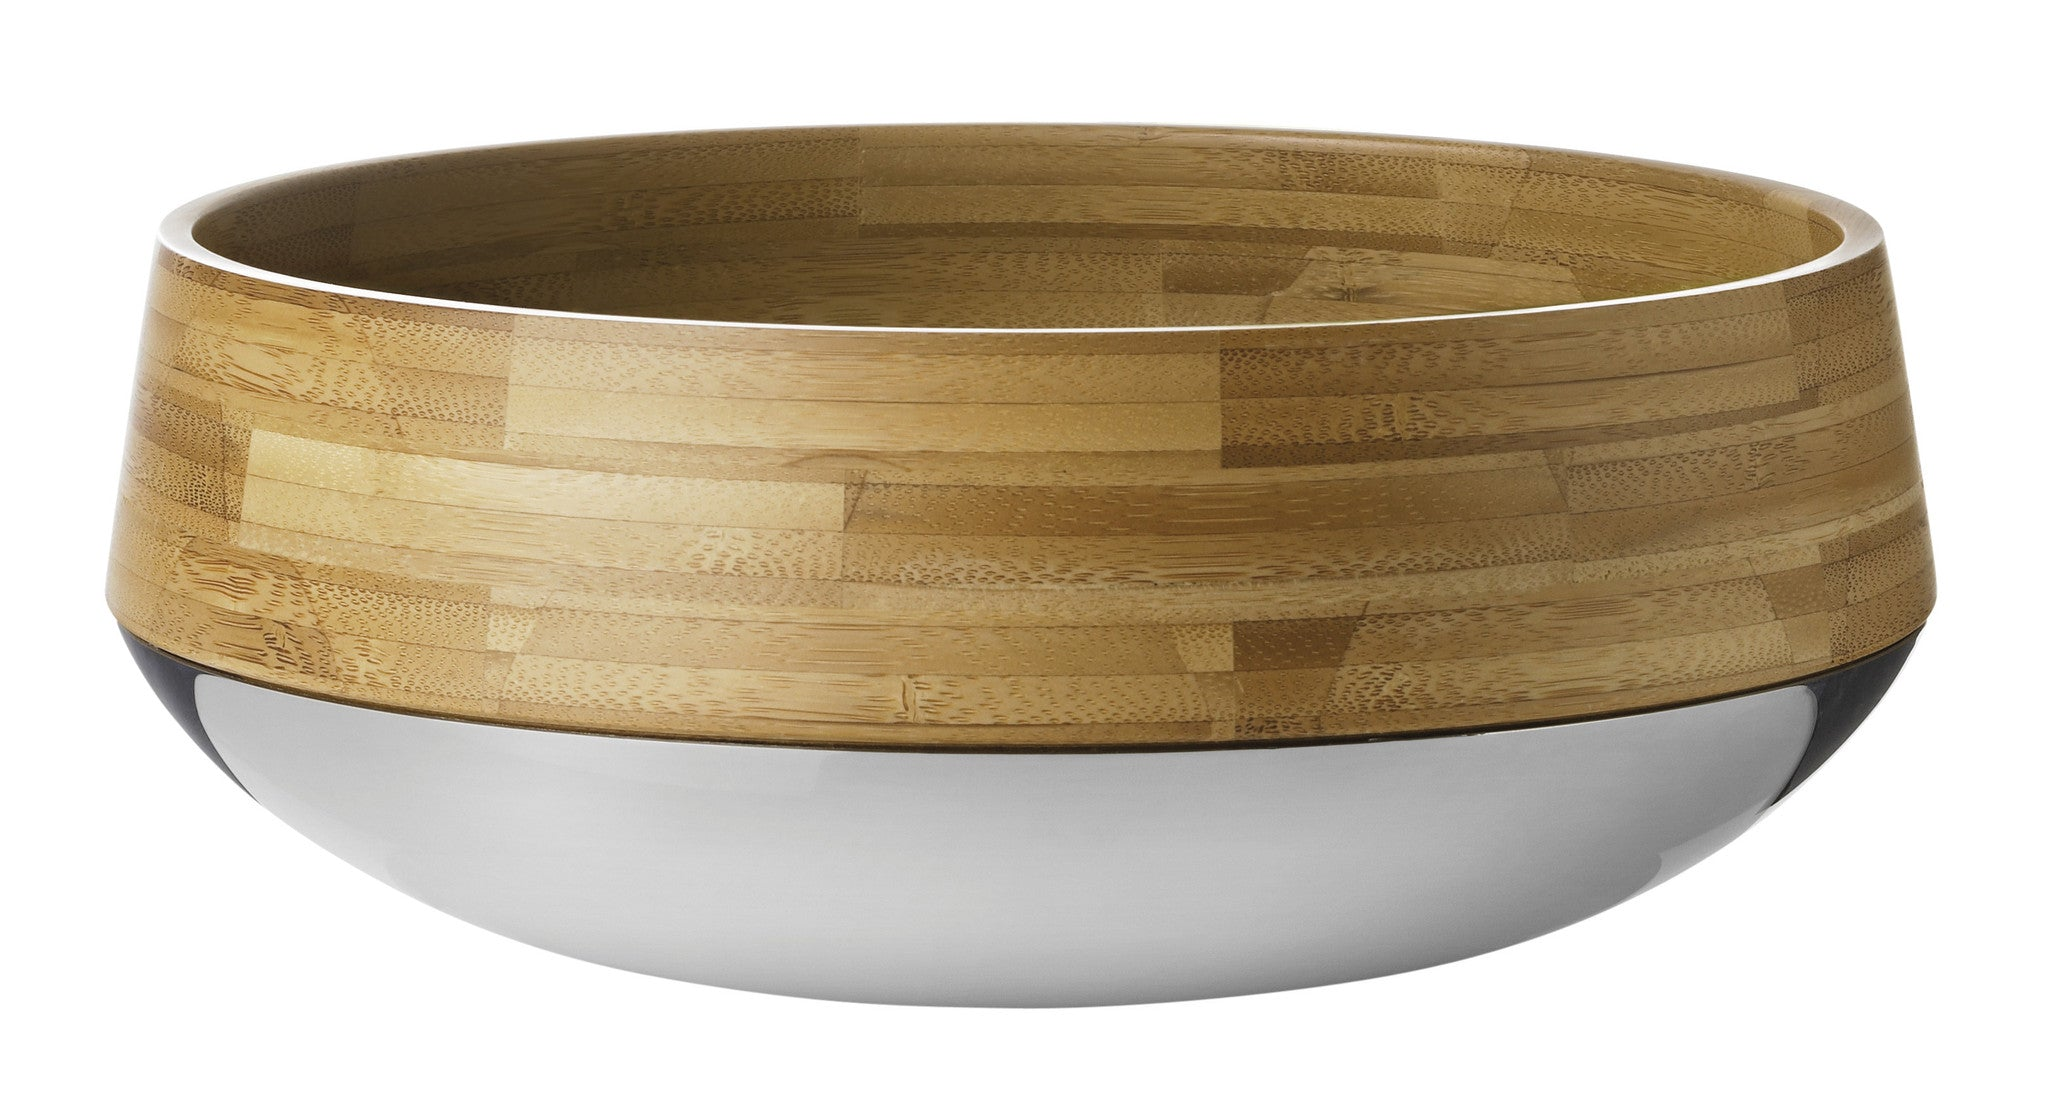 Kontra fruit-/salad bowl, ø 29 cm.